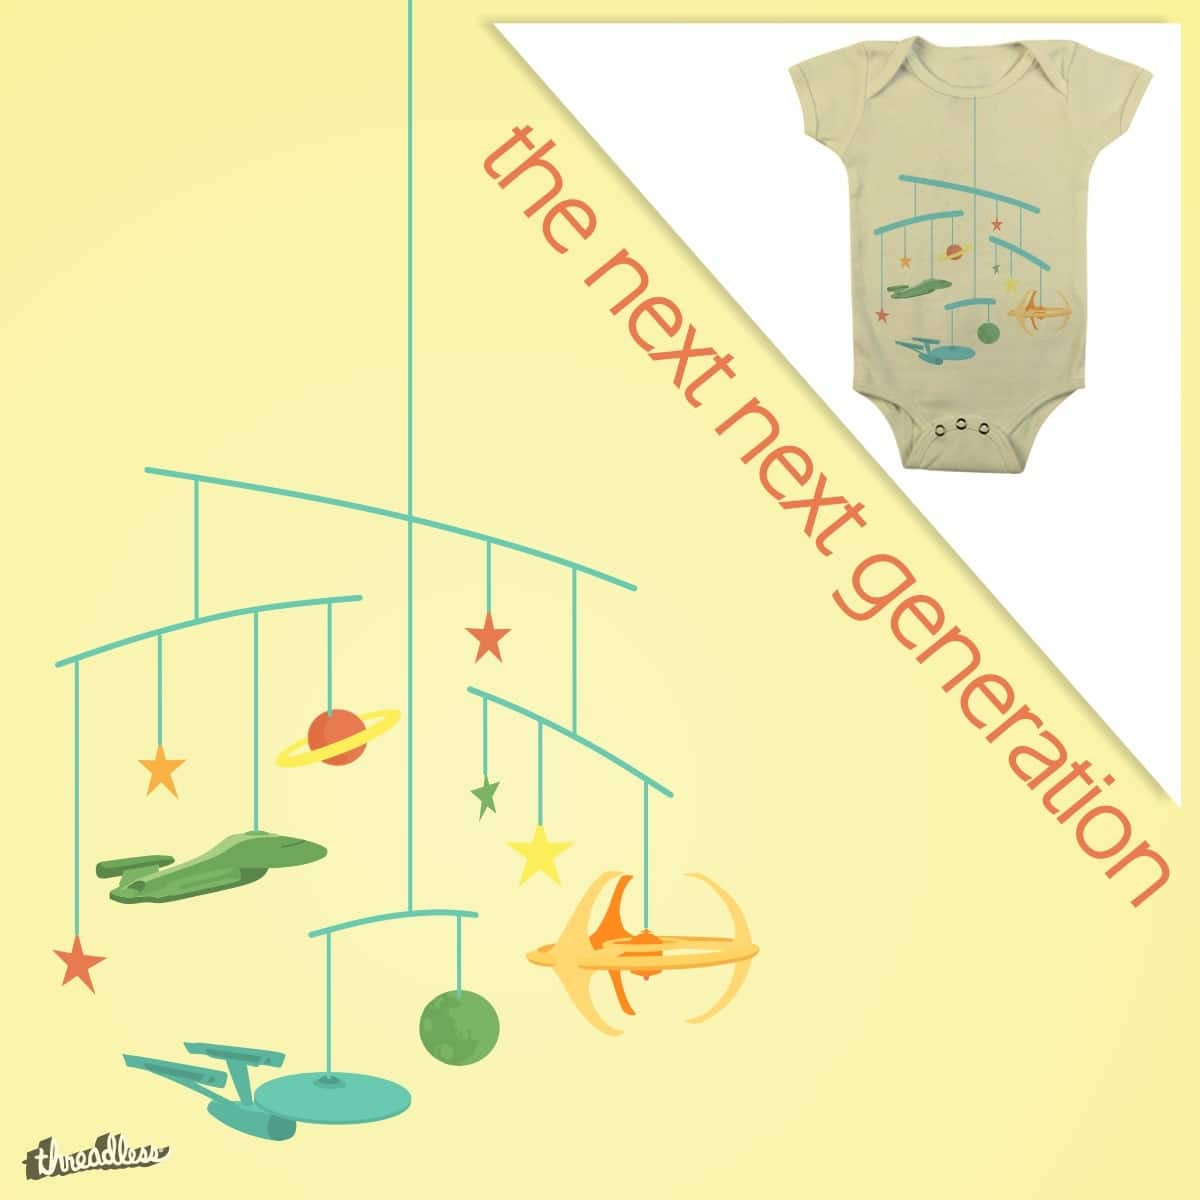 The Next Next Generation by jovima on Threadless